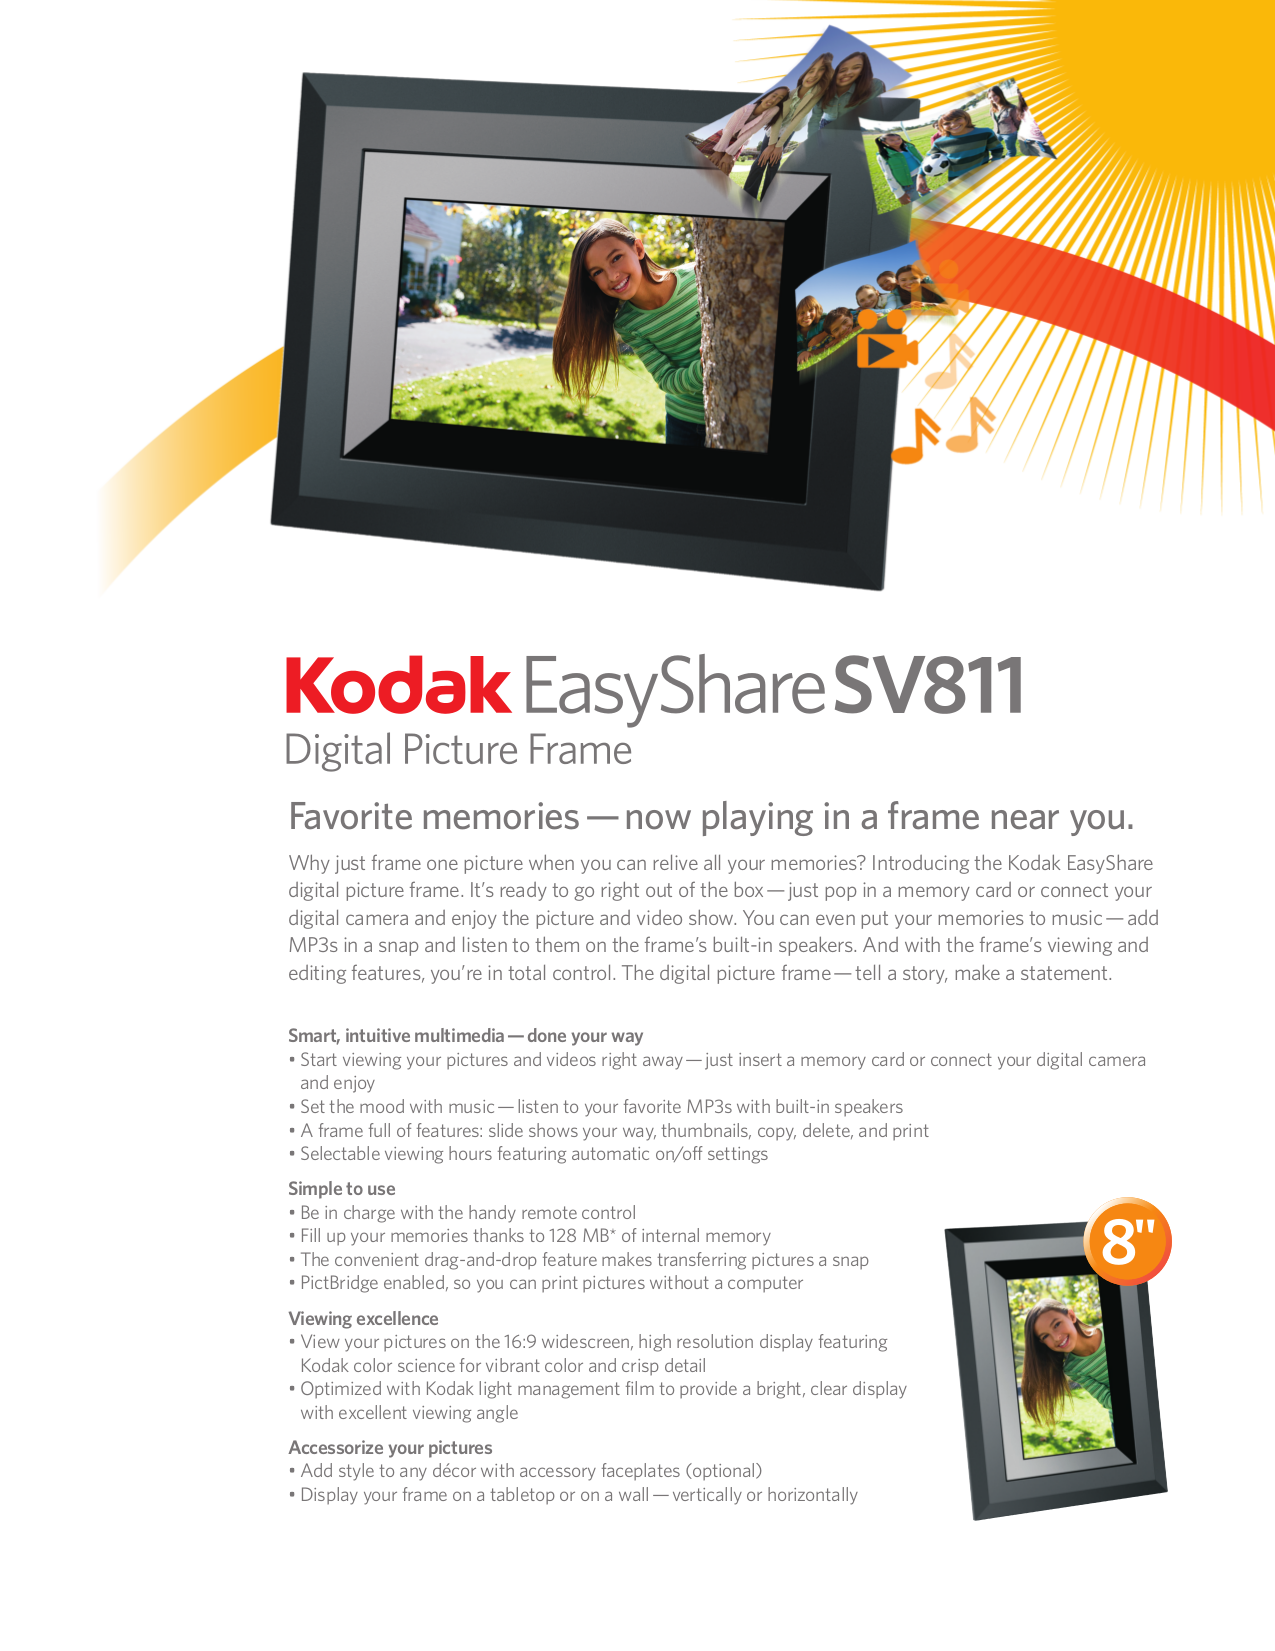 Download free pdf for Kodak EasyShare SV811 Digital Photo Frame manual